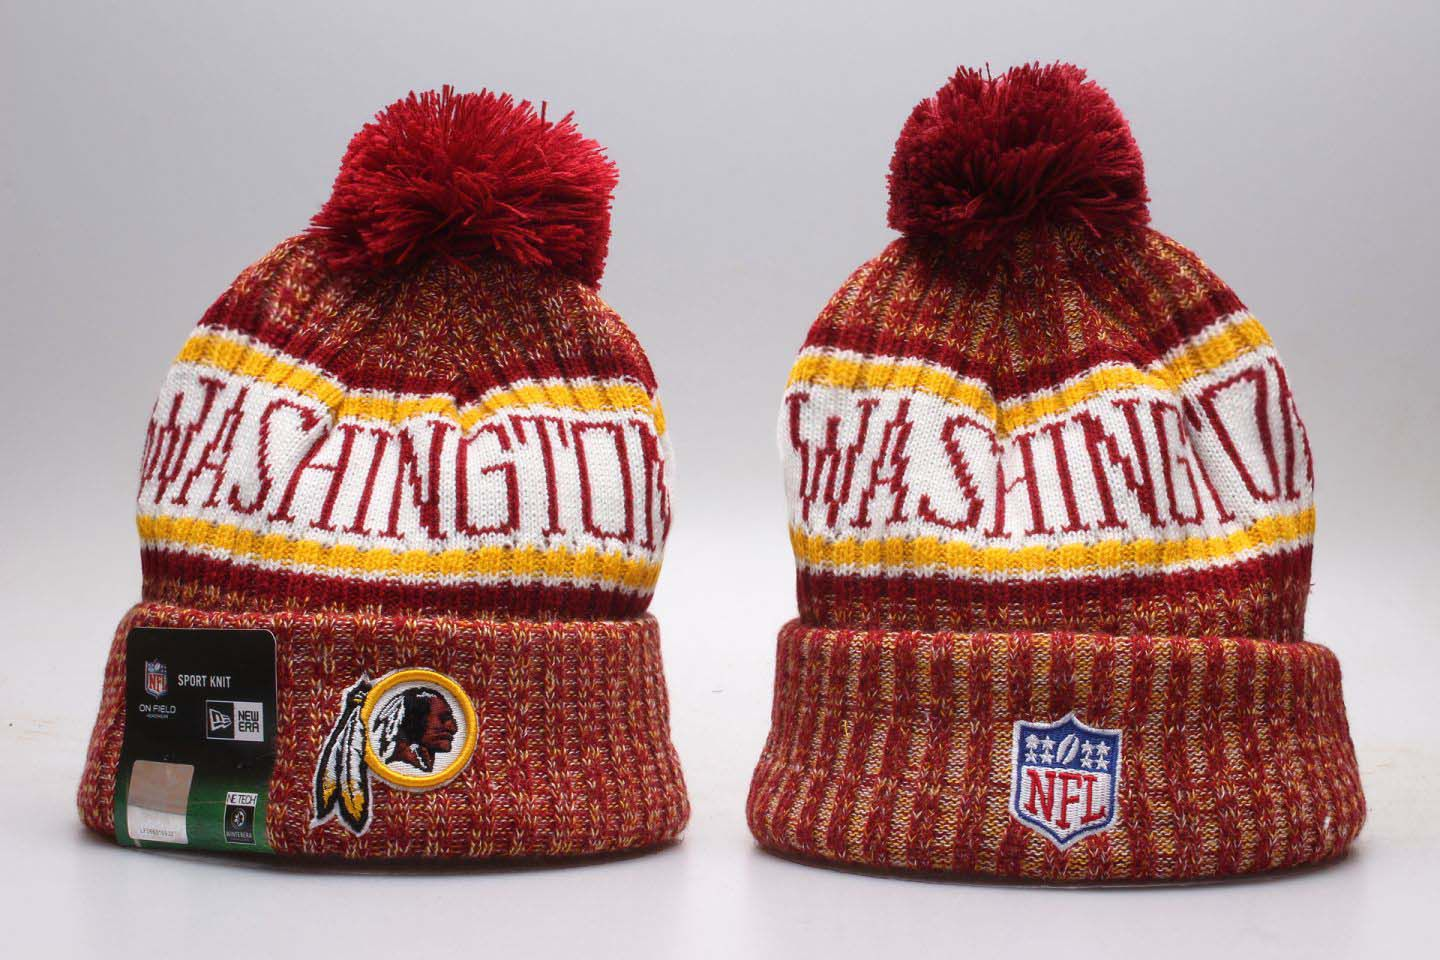 NFL Washington Red Skins Beanie hot hat